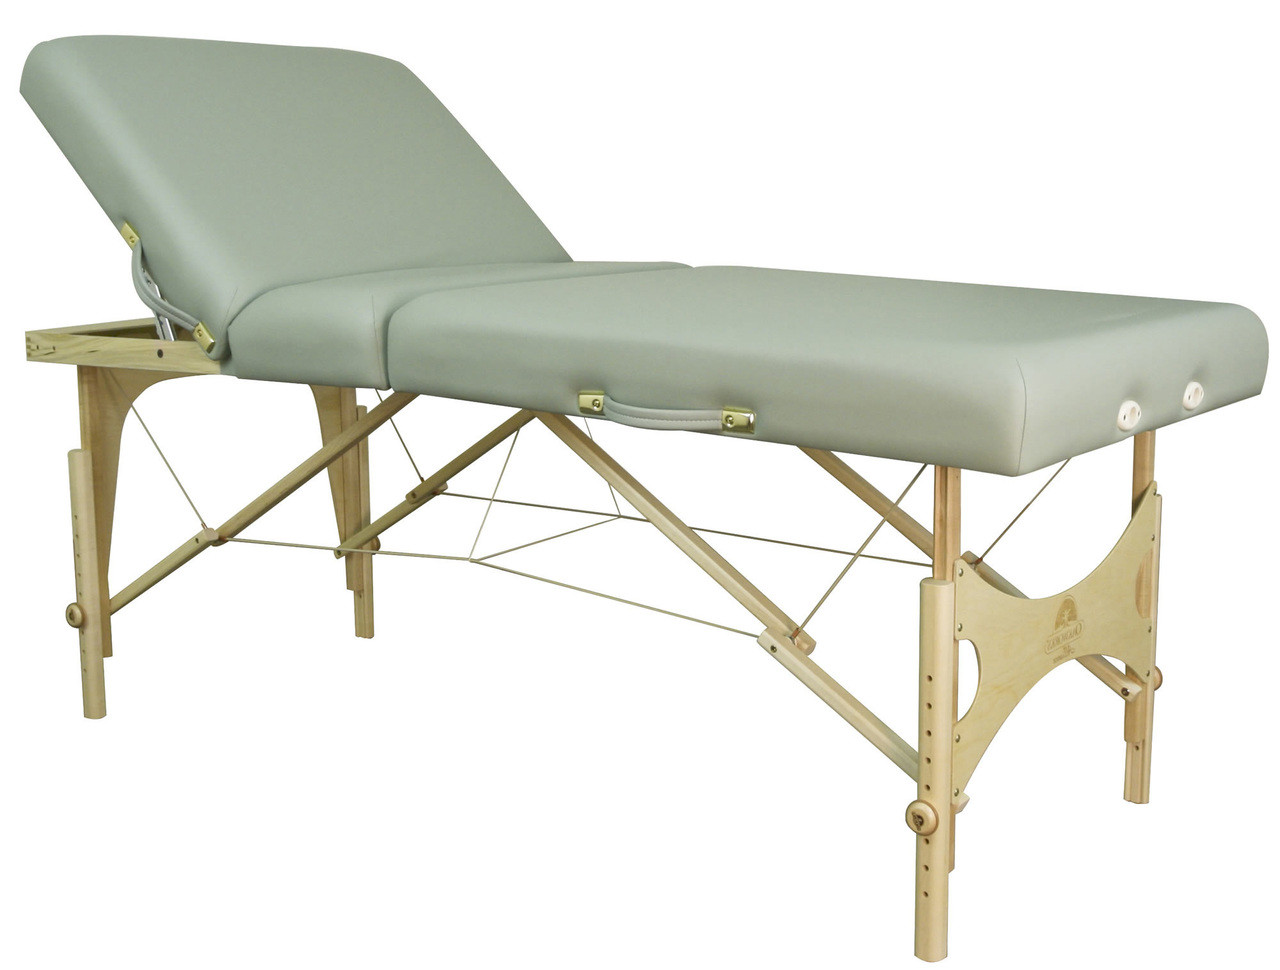 Oakworks Alliance Wooden Massage Table Liftback